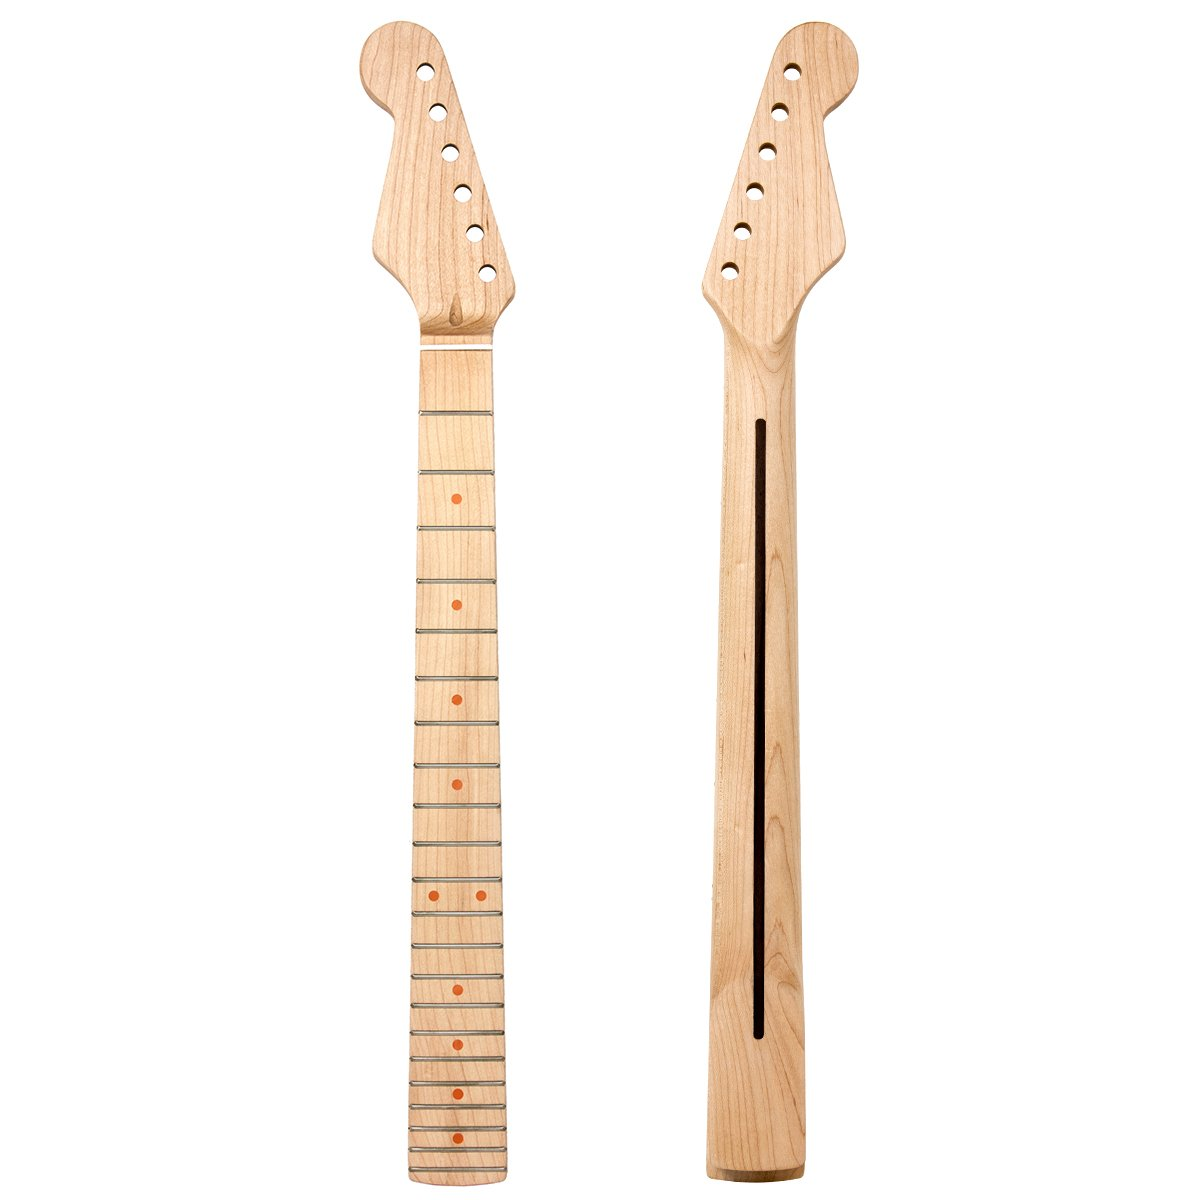 Kmise Left Hand Electric Neck for Similar Guitar Parts Replacement Canada Maple 22 Frets Clear Satin (2)